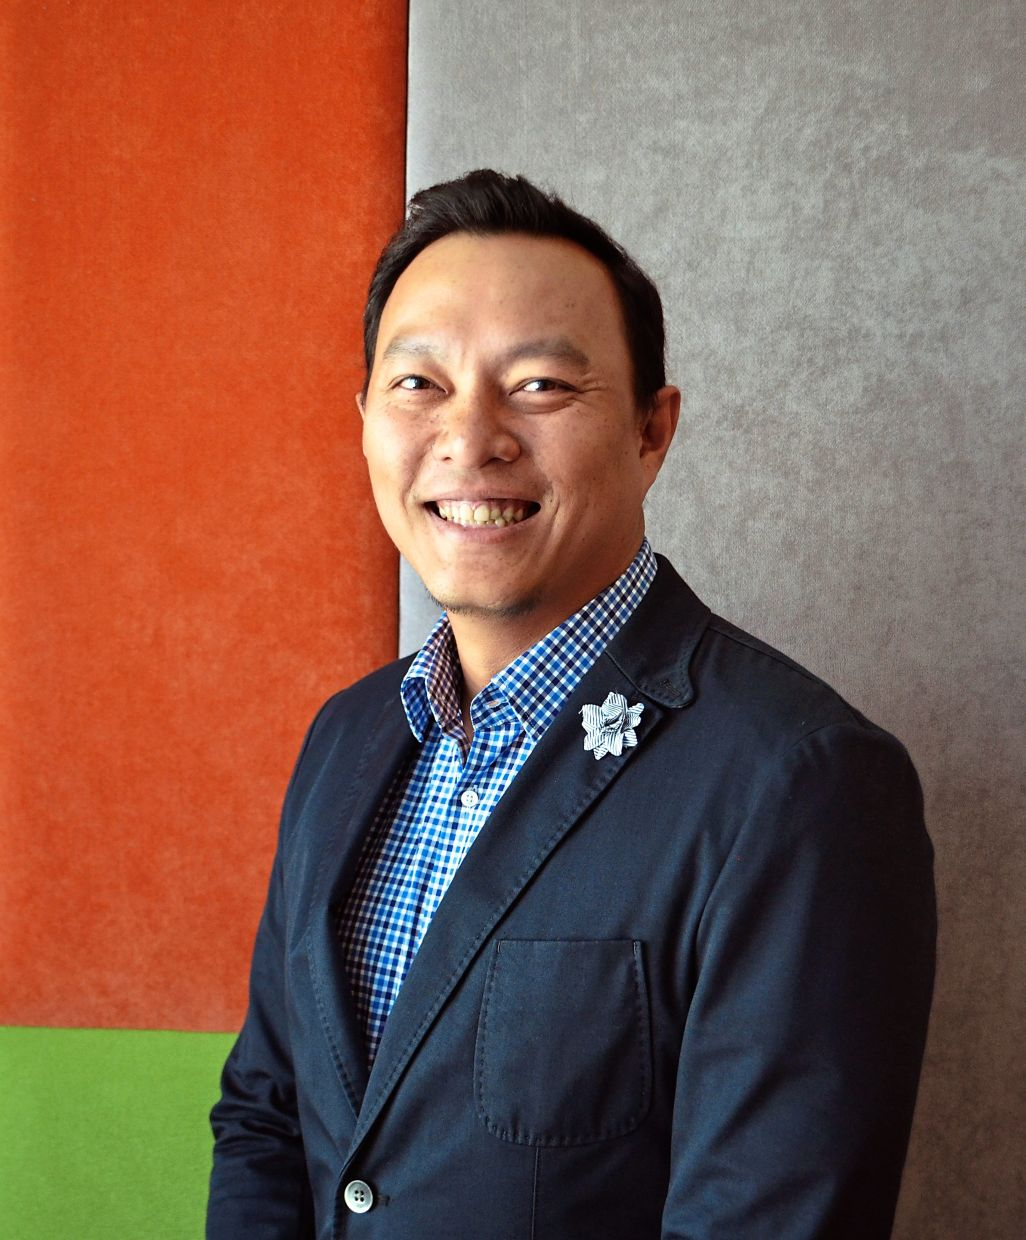 Go digital: Lim says the industry needs digital skill sets, speed, and agility at every level.